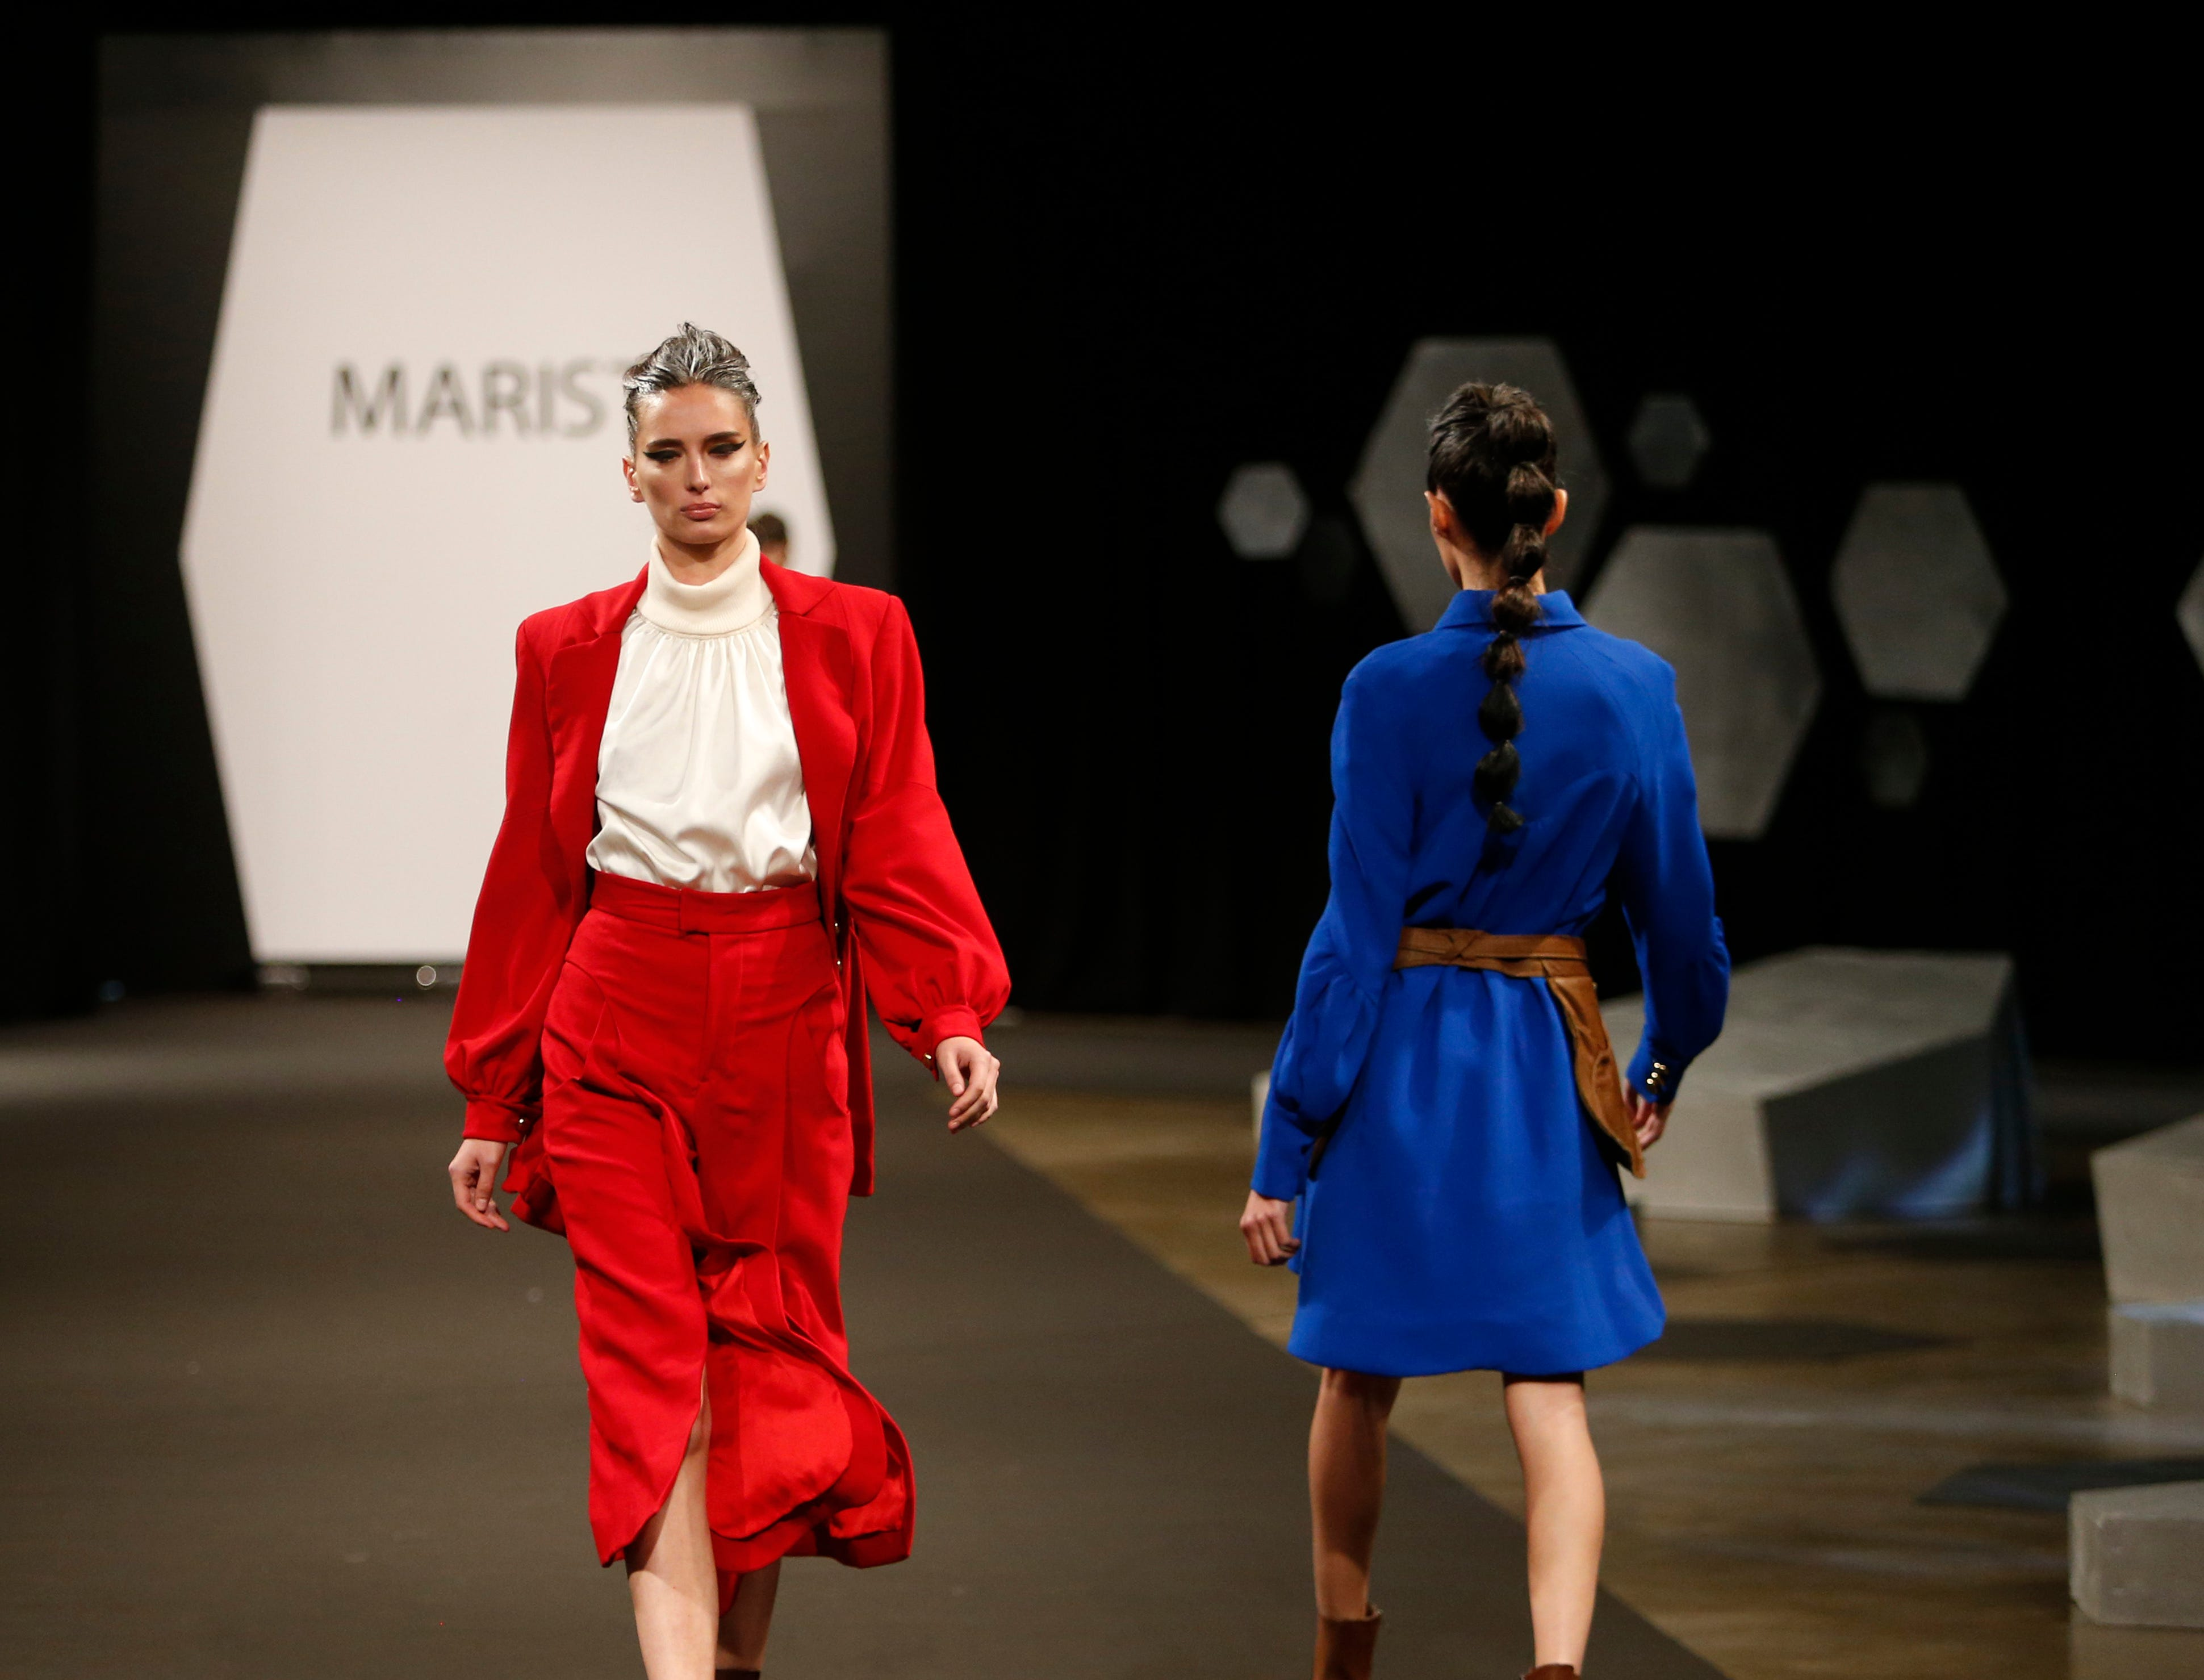 Designs from the collection of Marist College Fashion Department senior Anna Cortese during the 33rd Marist College Silver Needle Runway Show on May 10, 2019.